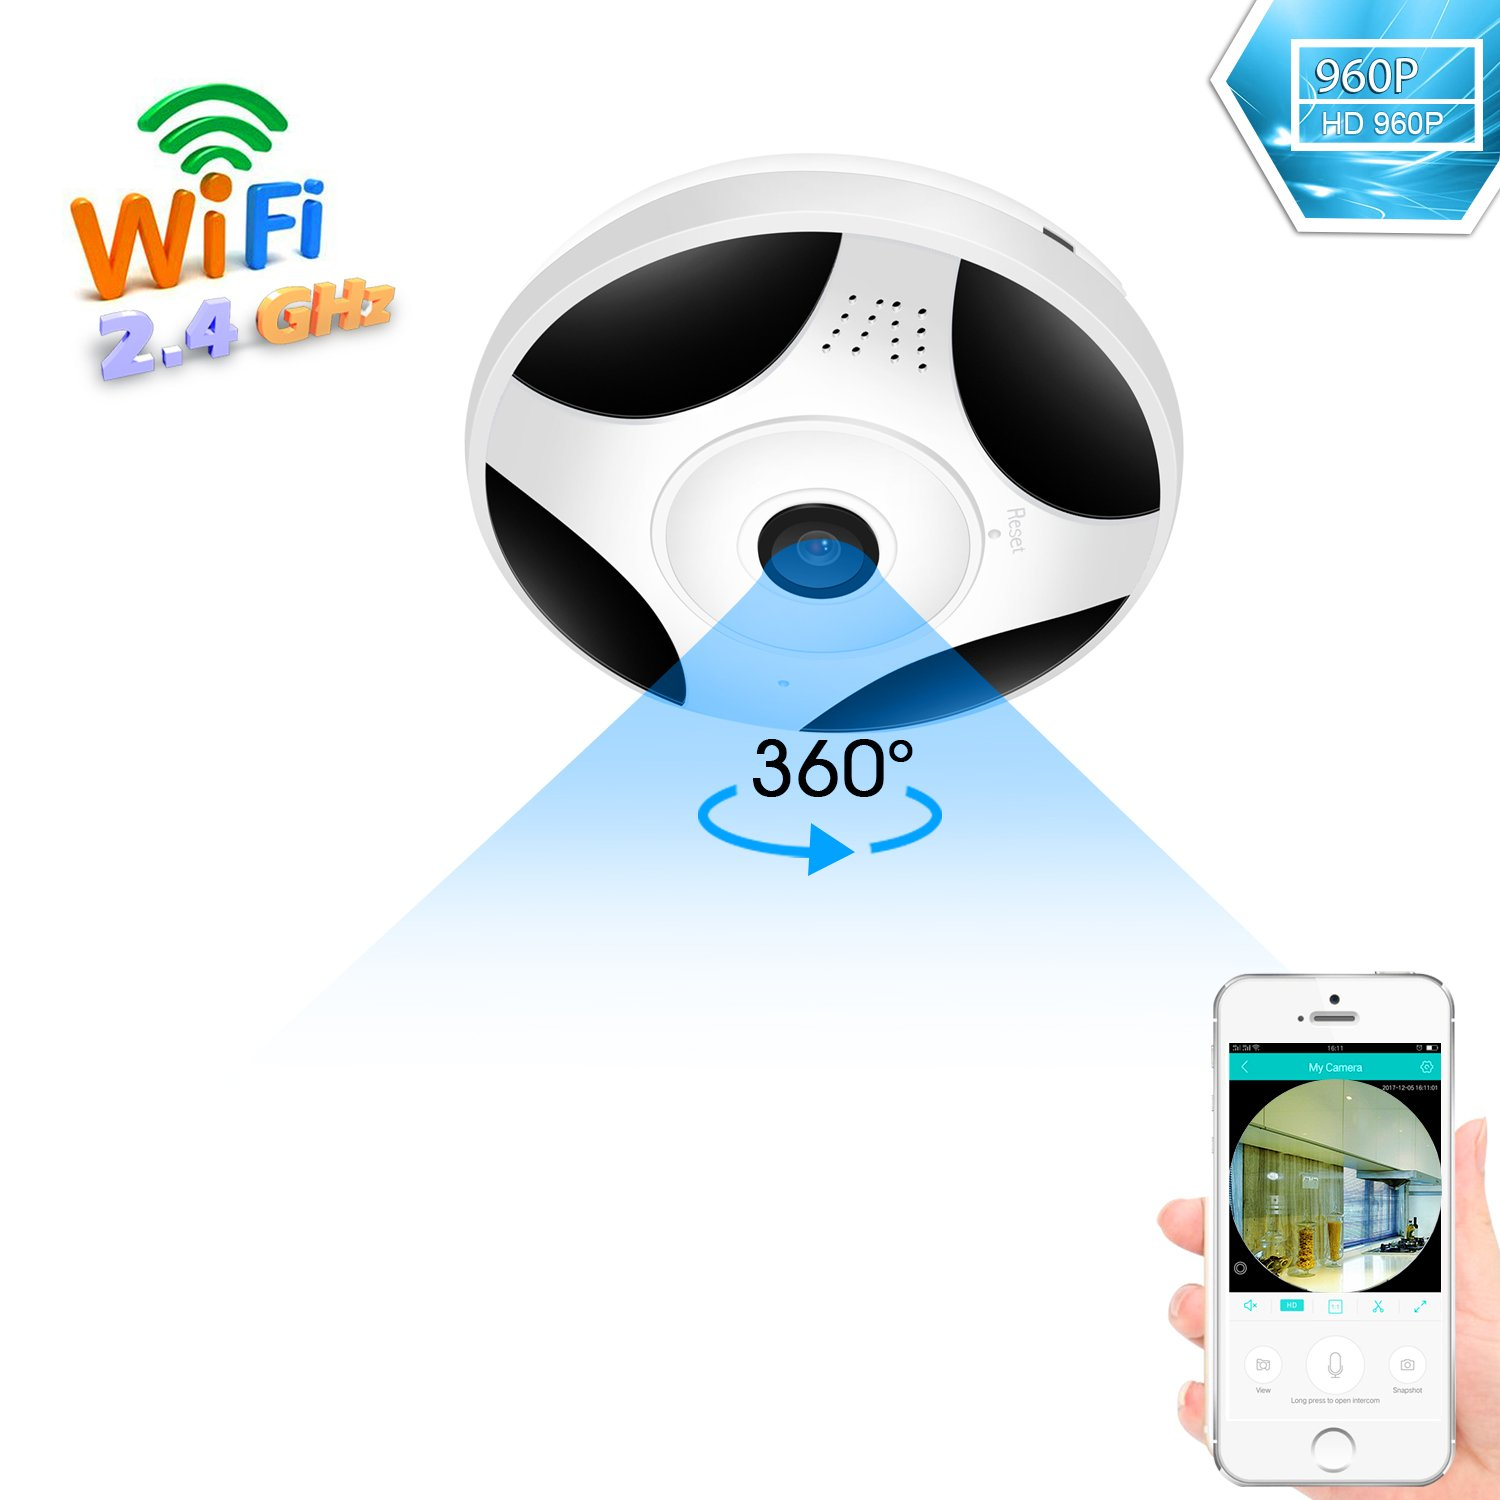 BESDER 360 Degree Panoramic Wifi Camera HD 960P Security Camera Baby Monitor Home Camera Pet Monitor Two Way Audio Video Camera Remote Viewing Night Vision Motion Detection VR Wireless Cameras 2.4GHZ